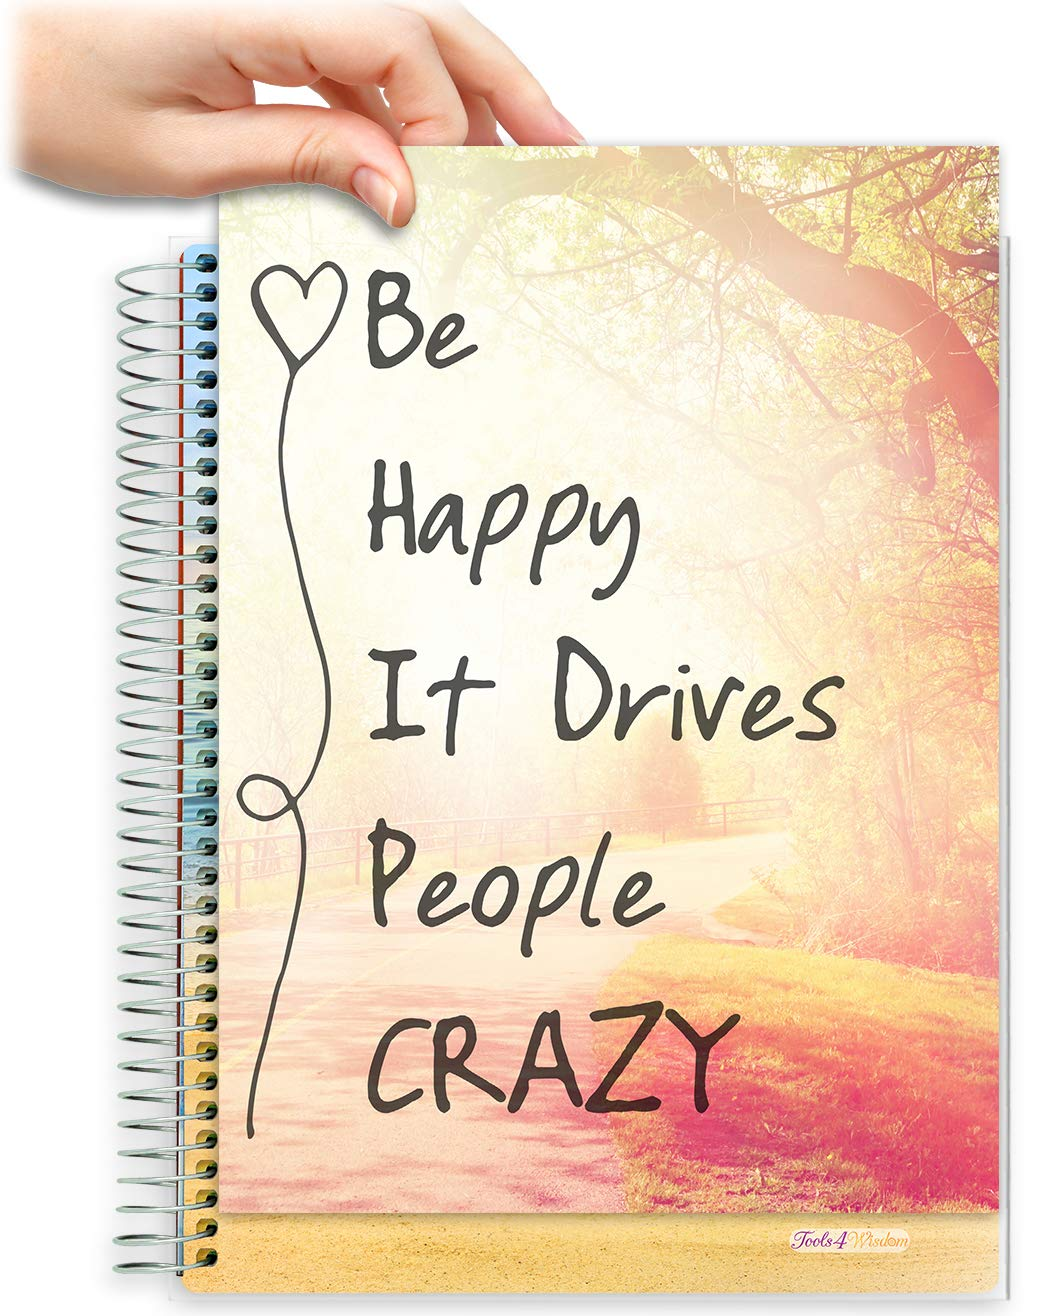 Tools4Wisdom Customizable Daily Planner 2021-2022 - April 2021 to June 2022 Calendar - Full Color -with Tools4Wisdom Customizable Scrapbook Planner Cover - Q2SC - 8.5x11 Softcover - Be Happy